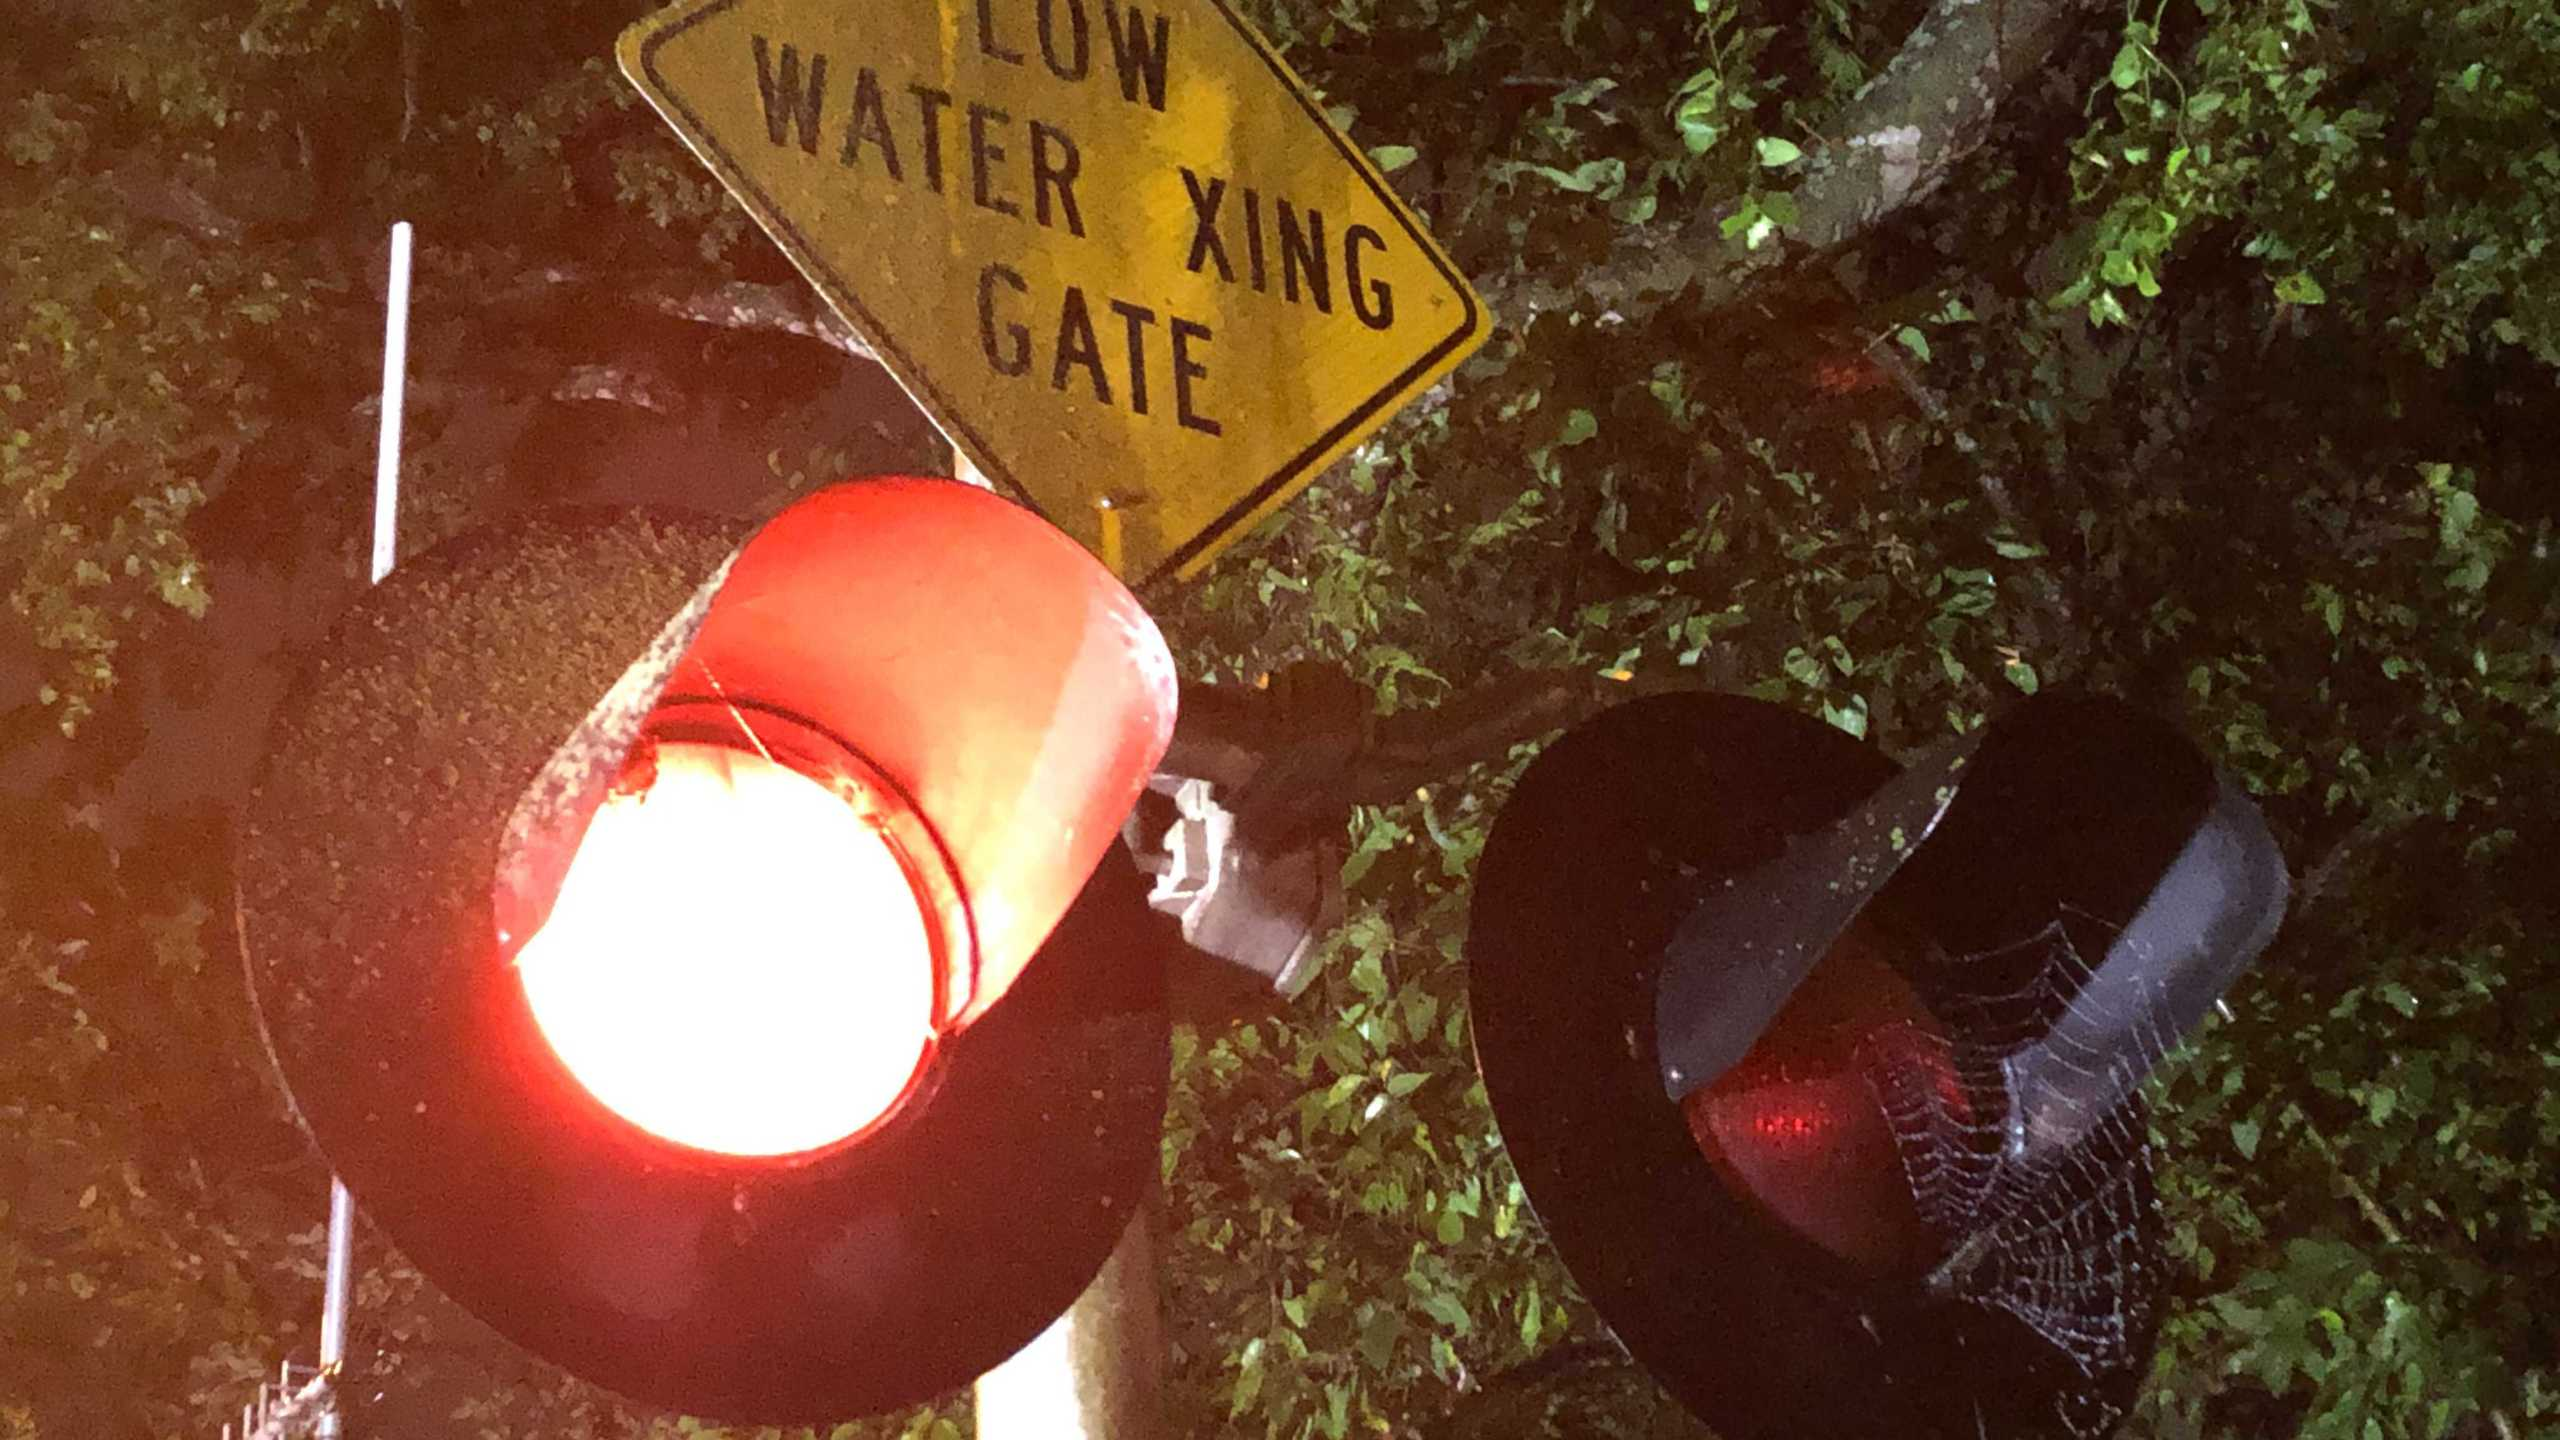 Heavy rains flooded a low water crossing on Old Bee Caves Road in southwest Austin on Friday. Some area of Austin got around four inches of rain as storms rolled through the area. (KXAN photo/Mariano Garza)